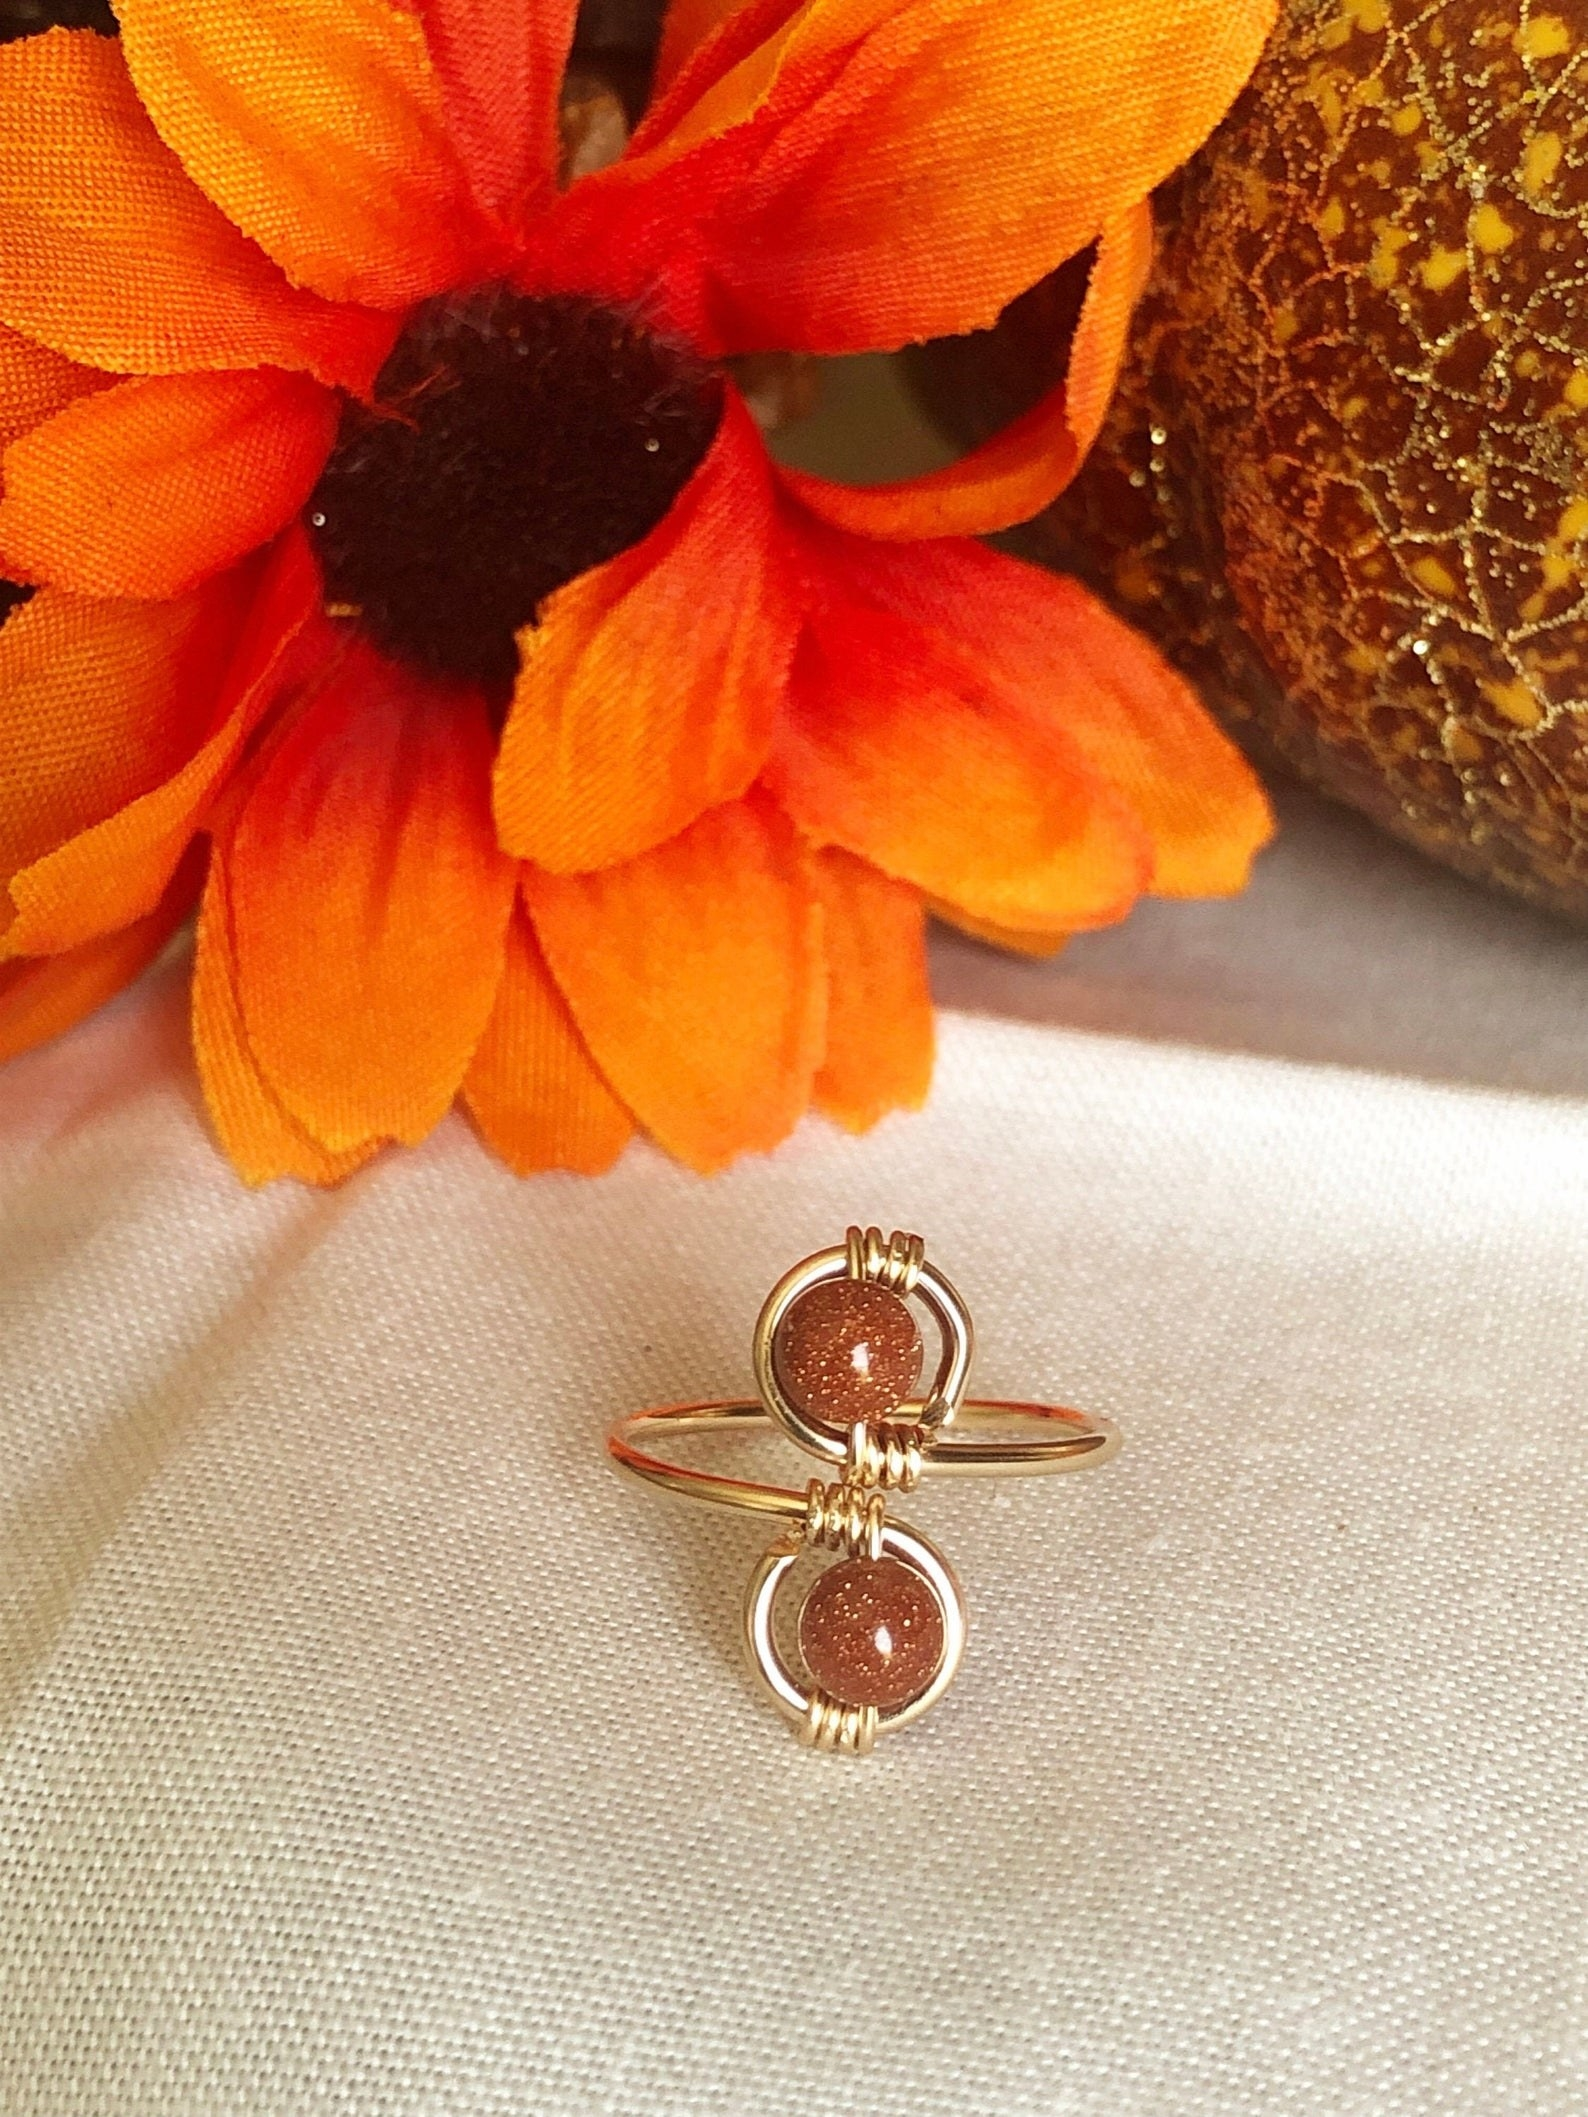 The ring with double hoops for double brown gemstones